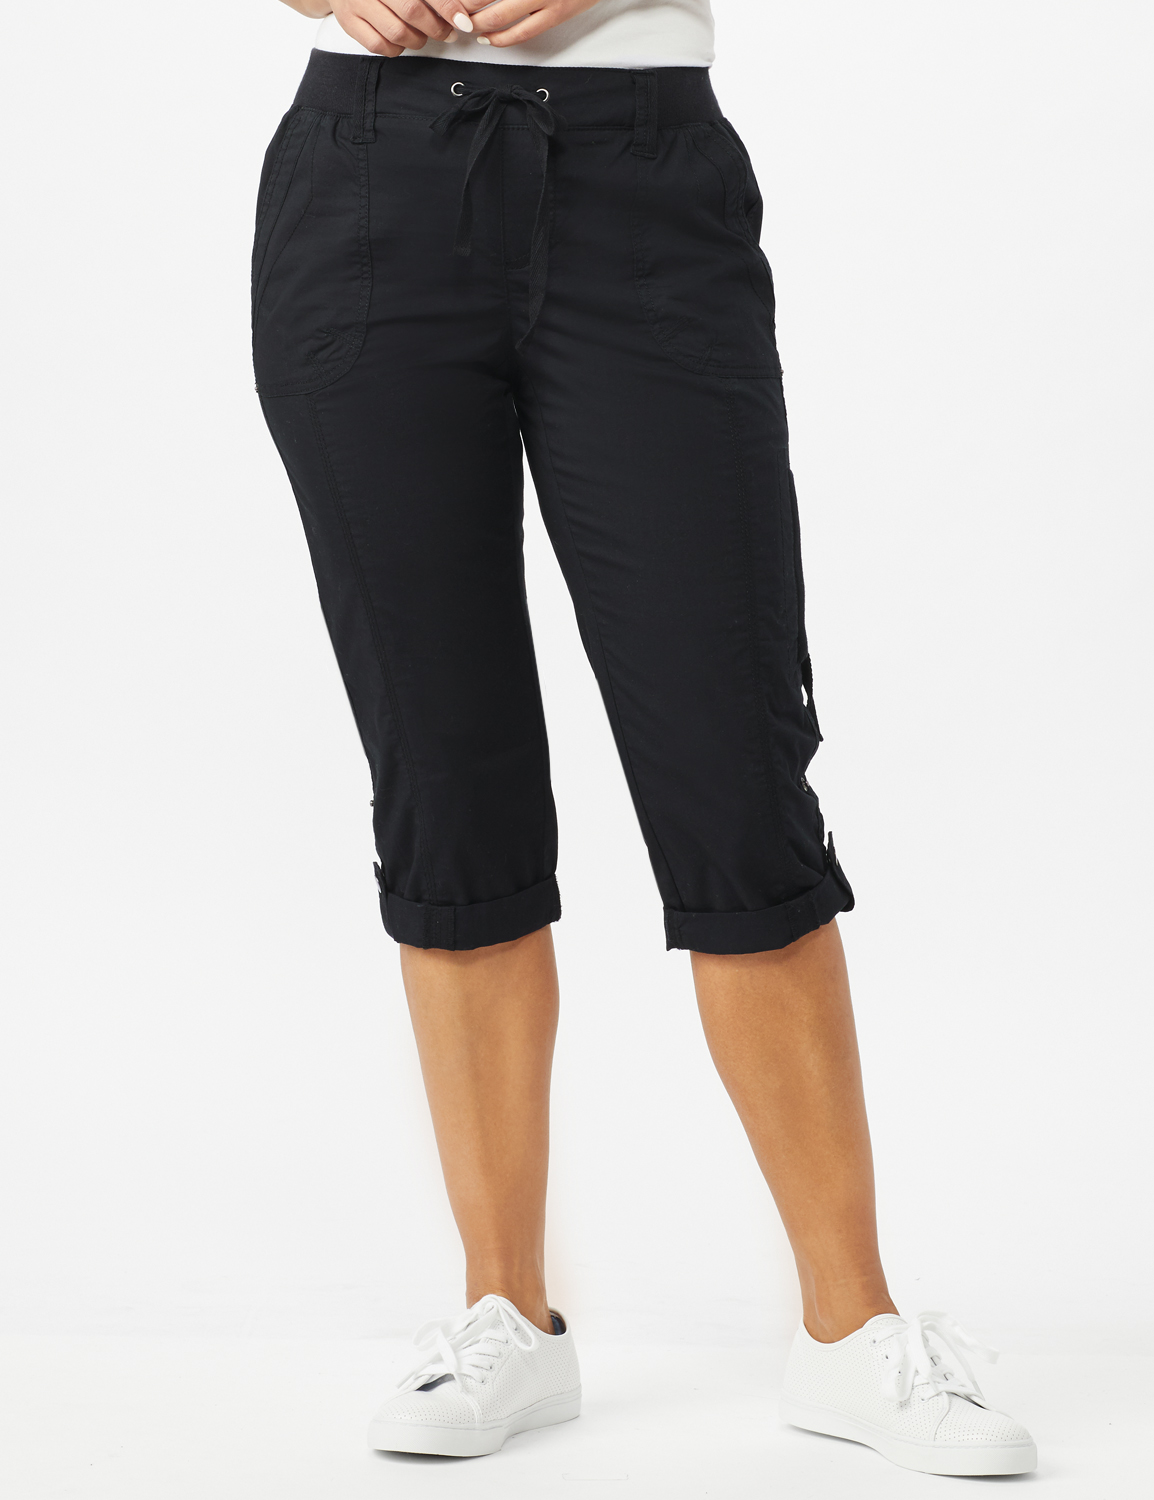 Utility Knit Waist Pull on Capri Pants - Ebony Black - Front